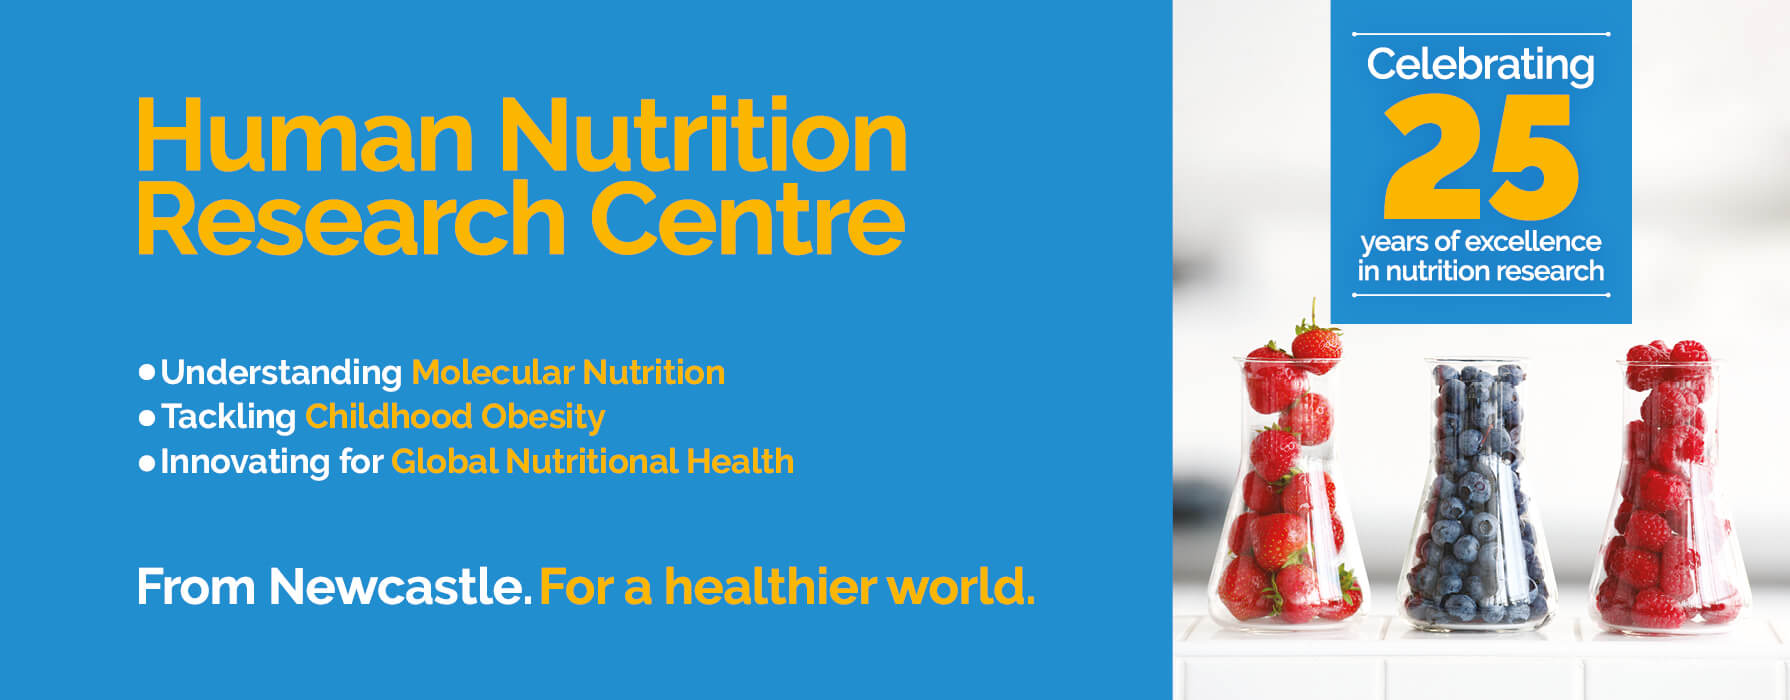 logo for 25 years of the Human Nutrition Research Centre